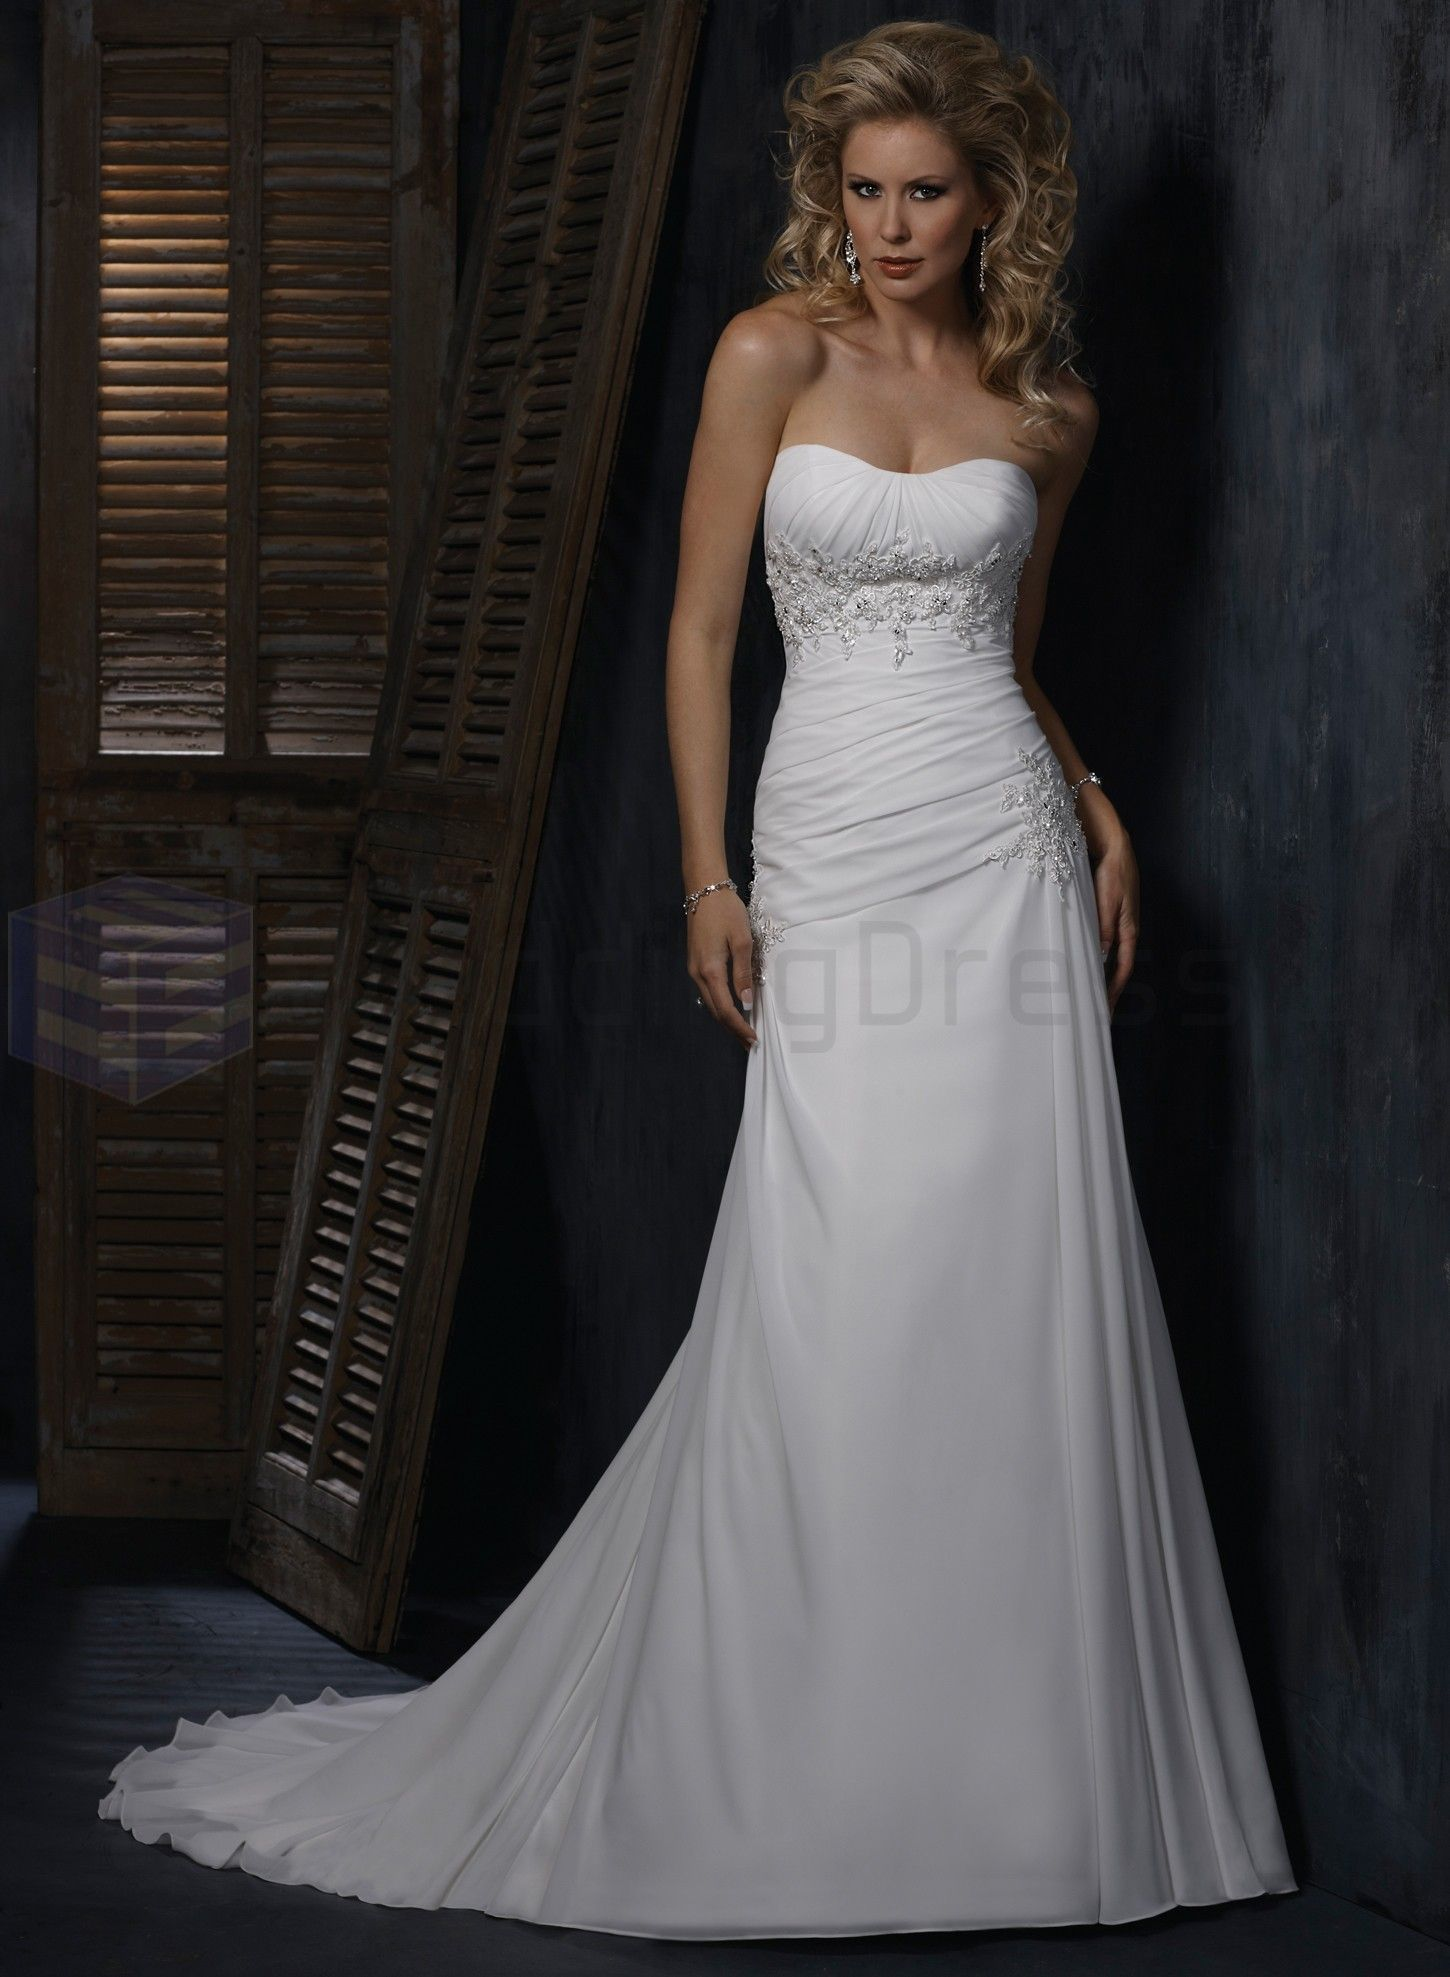 slim a-line wedding dress - Google Search | Dresses | Pinterest ...